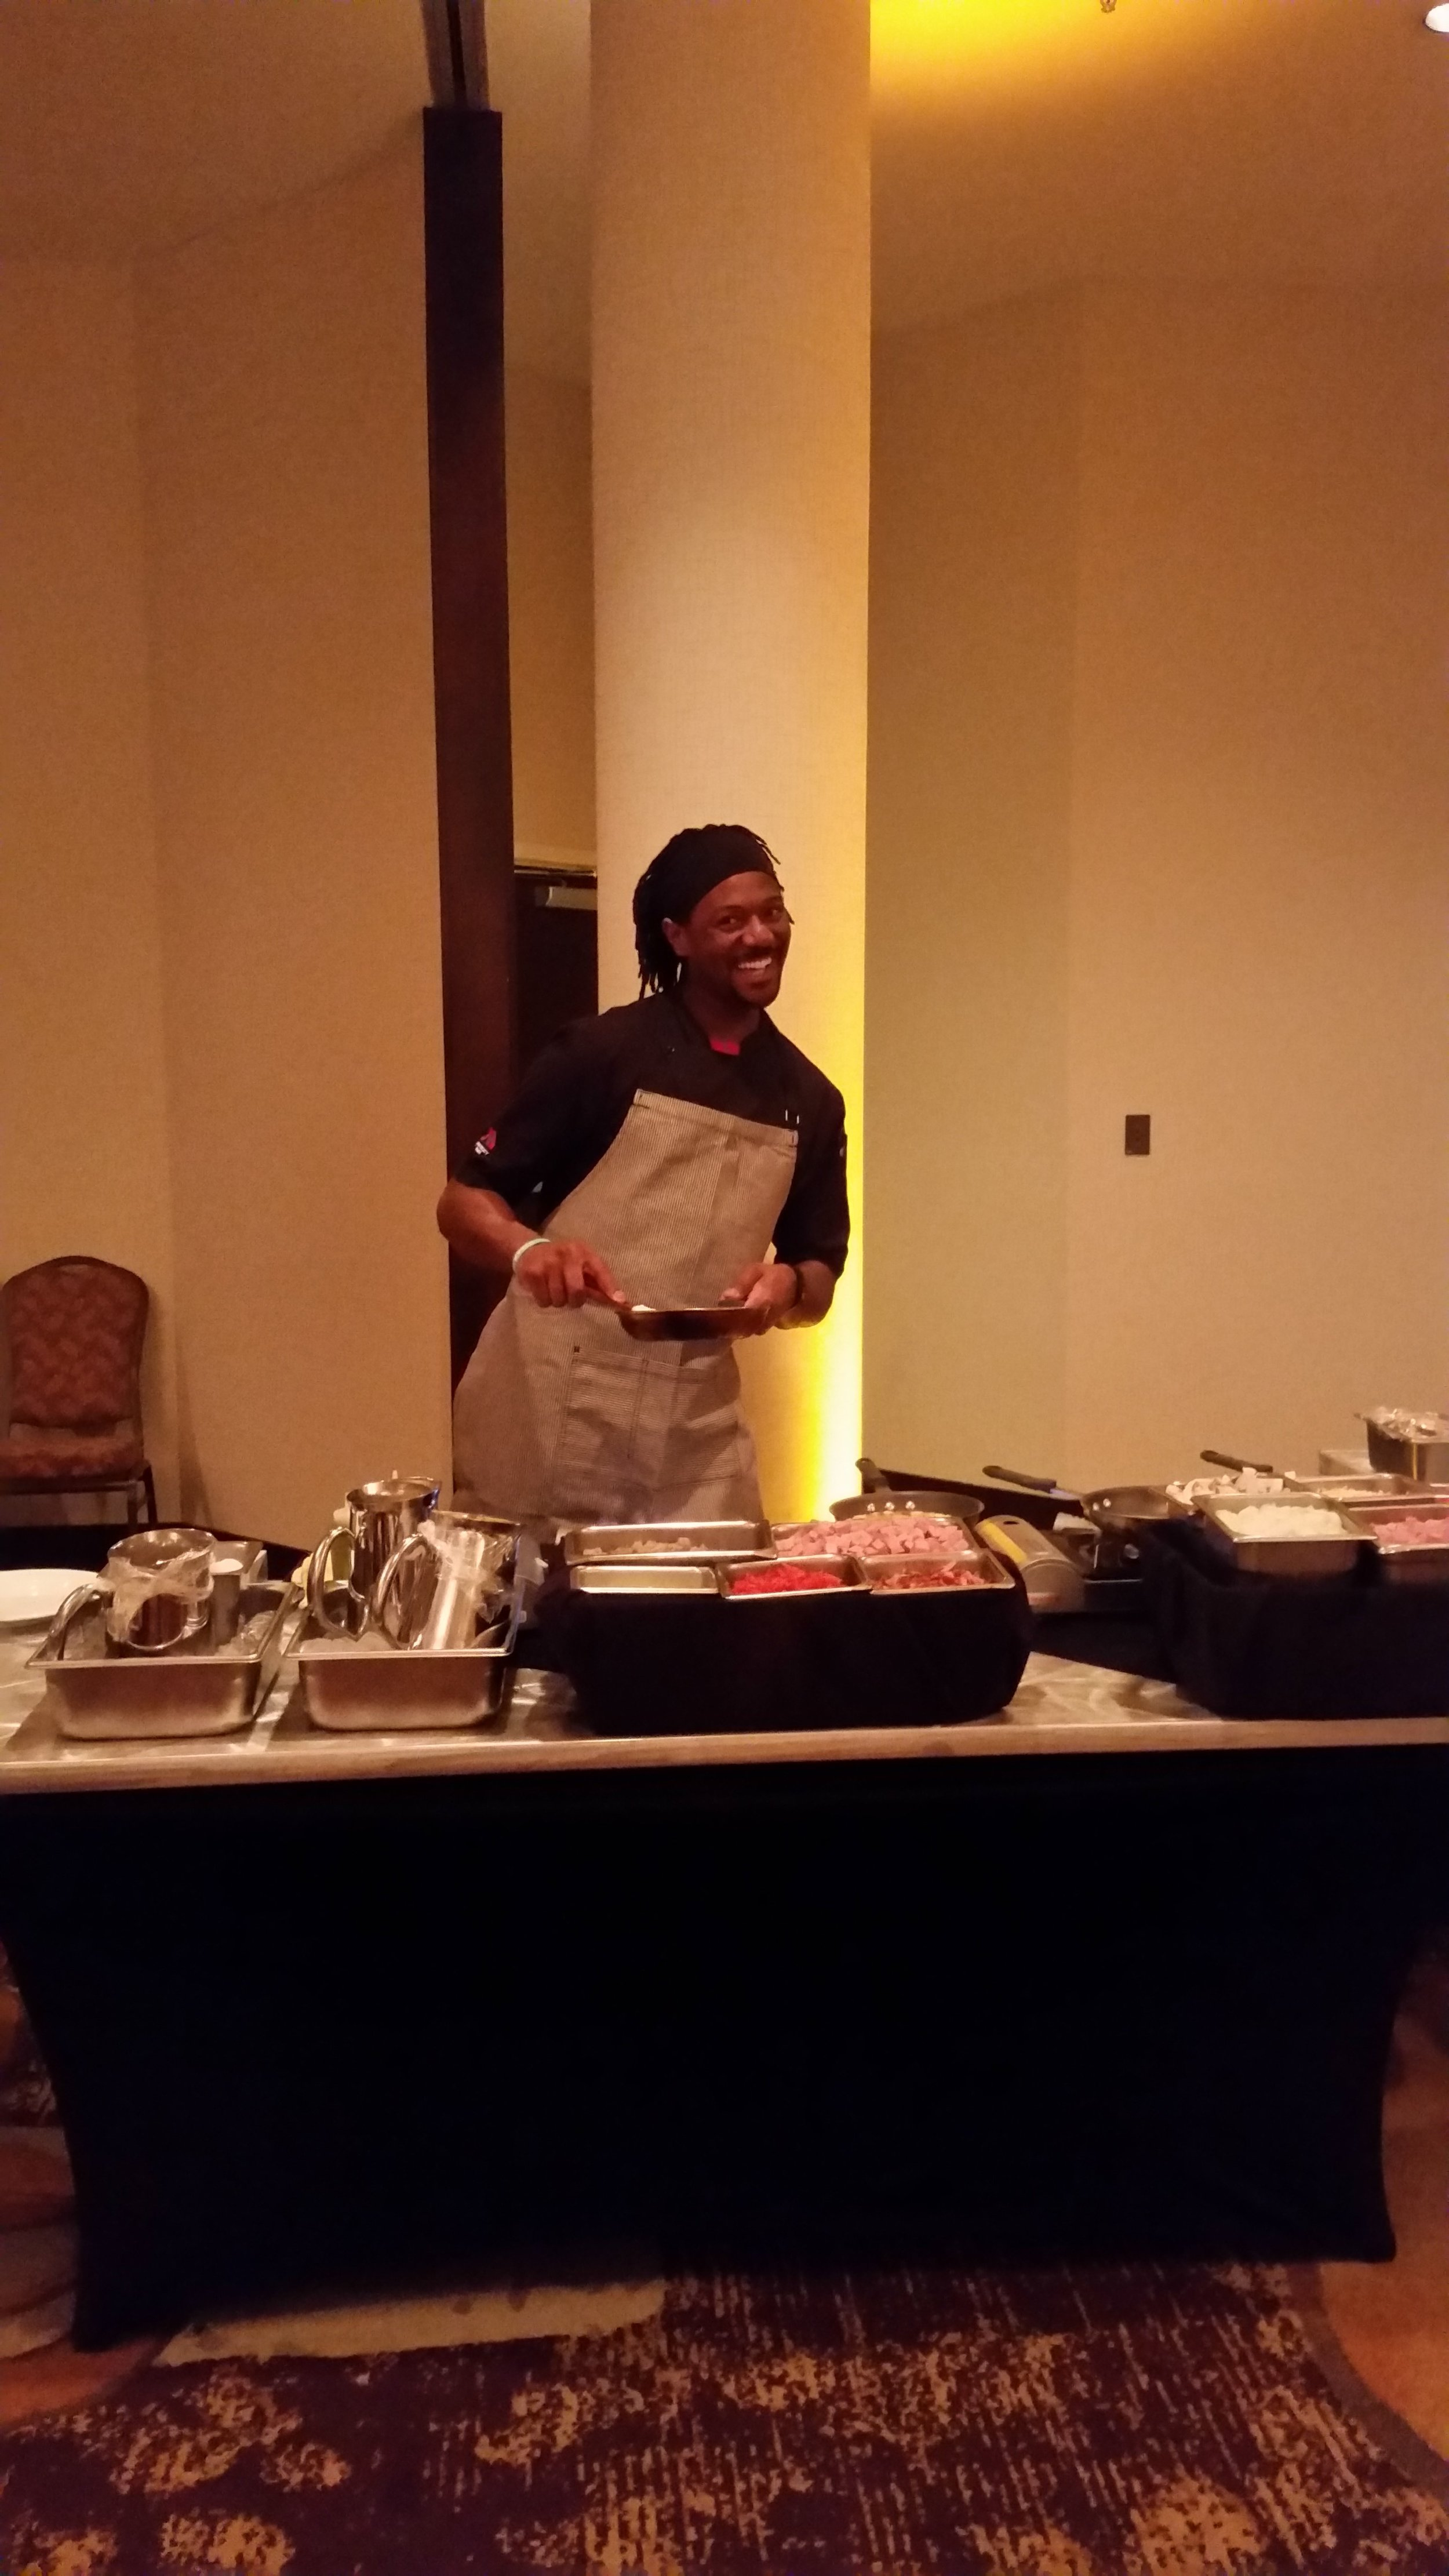 TJ having fun working the omlet station.